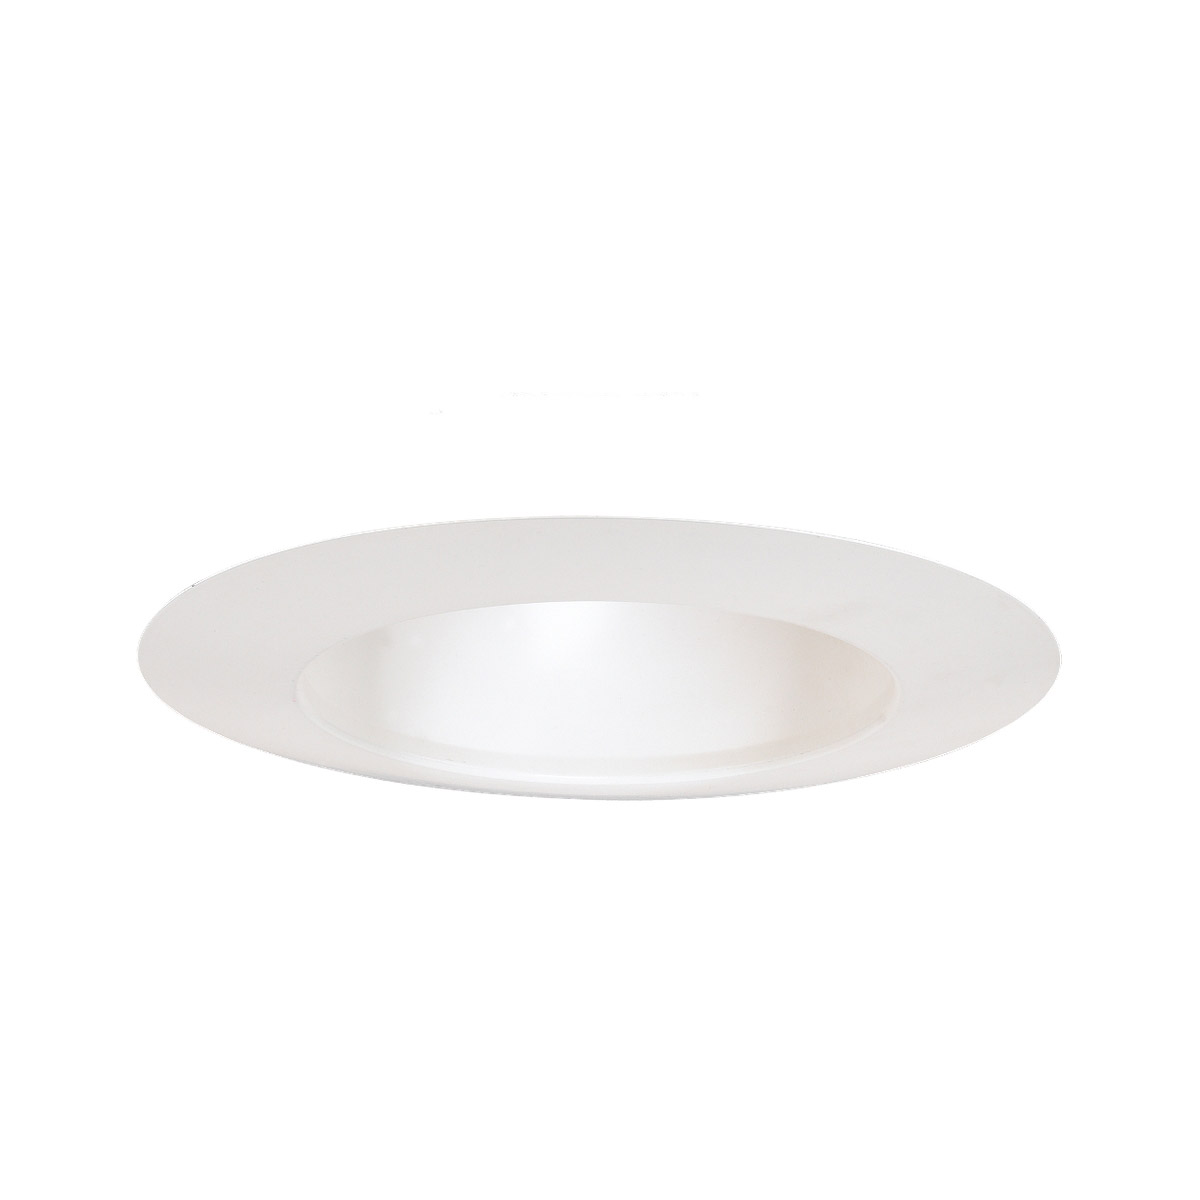 Sea Gull Lighting Signature Recessed Light in White 11023AT-15